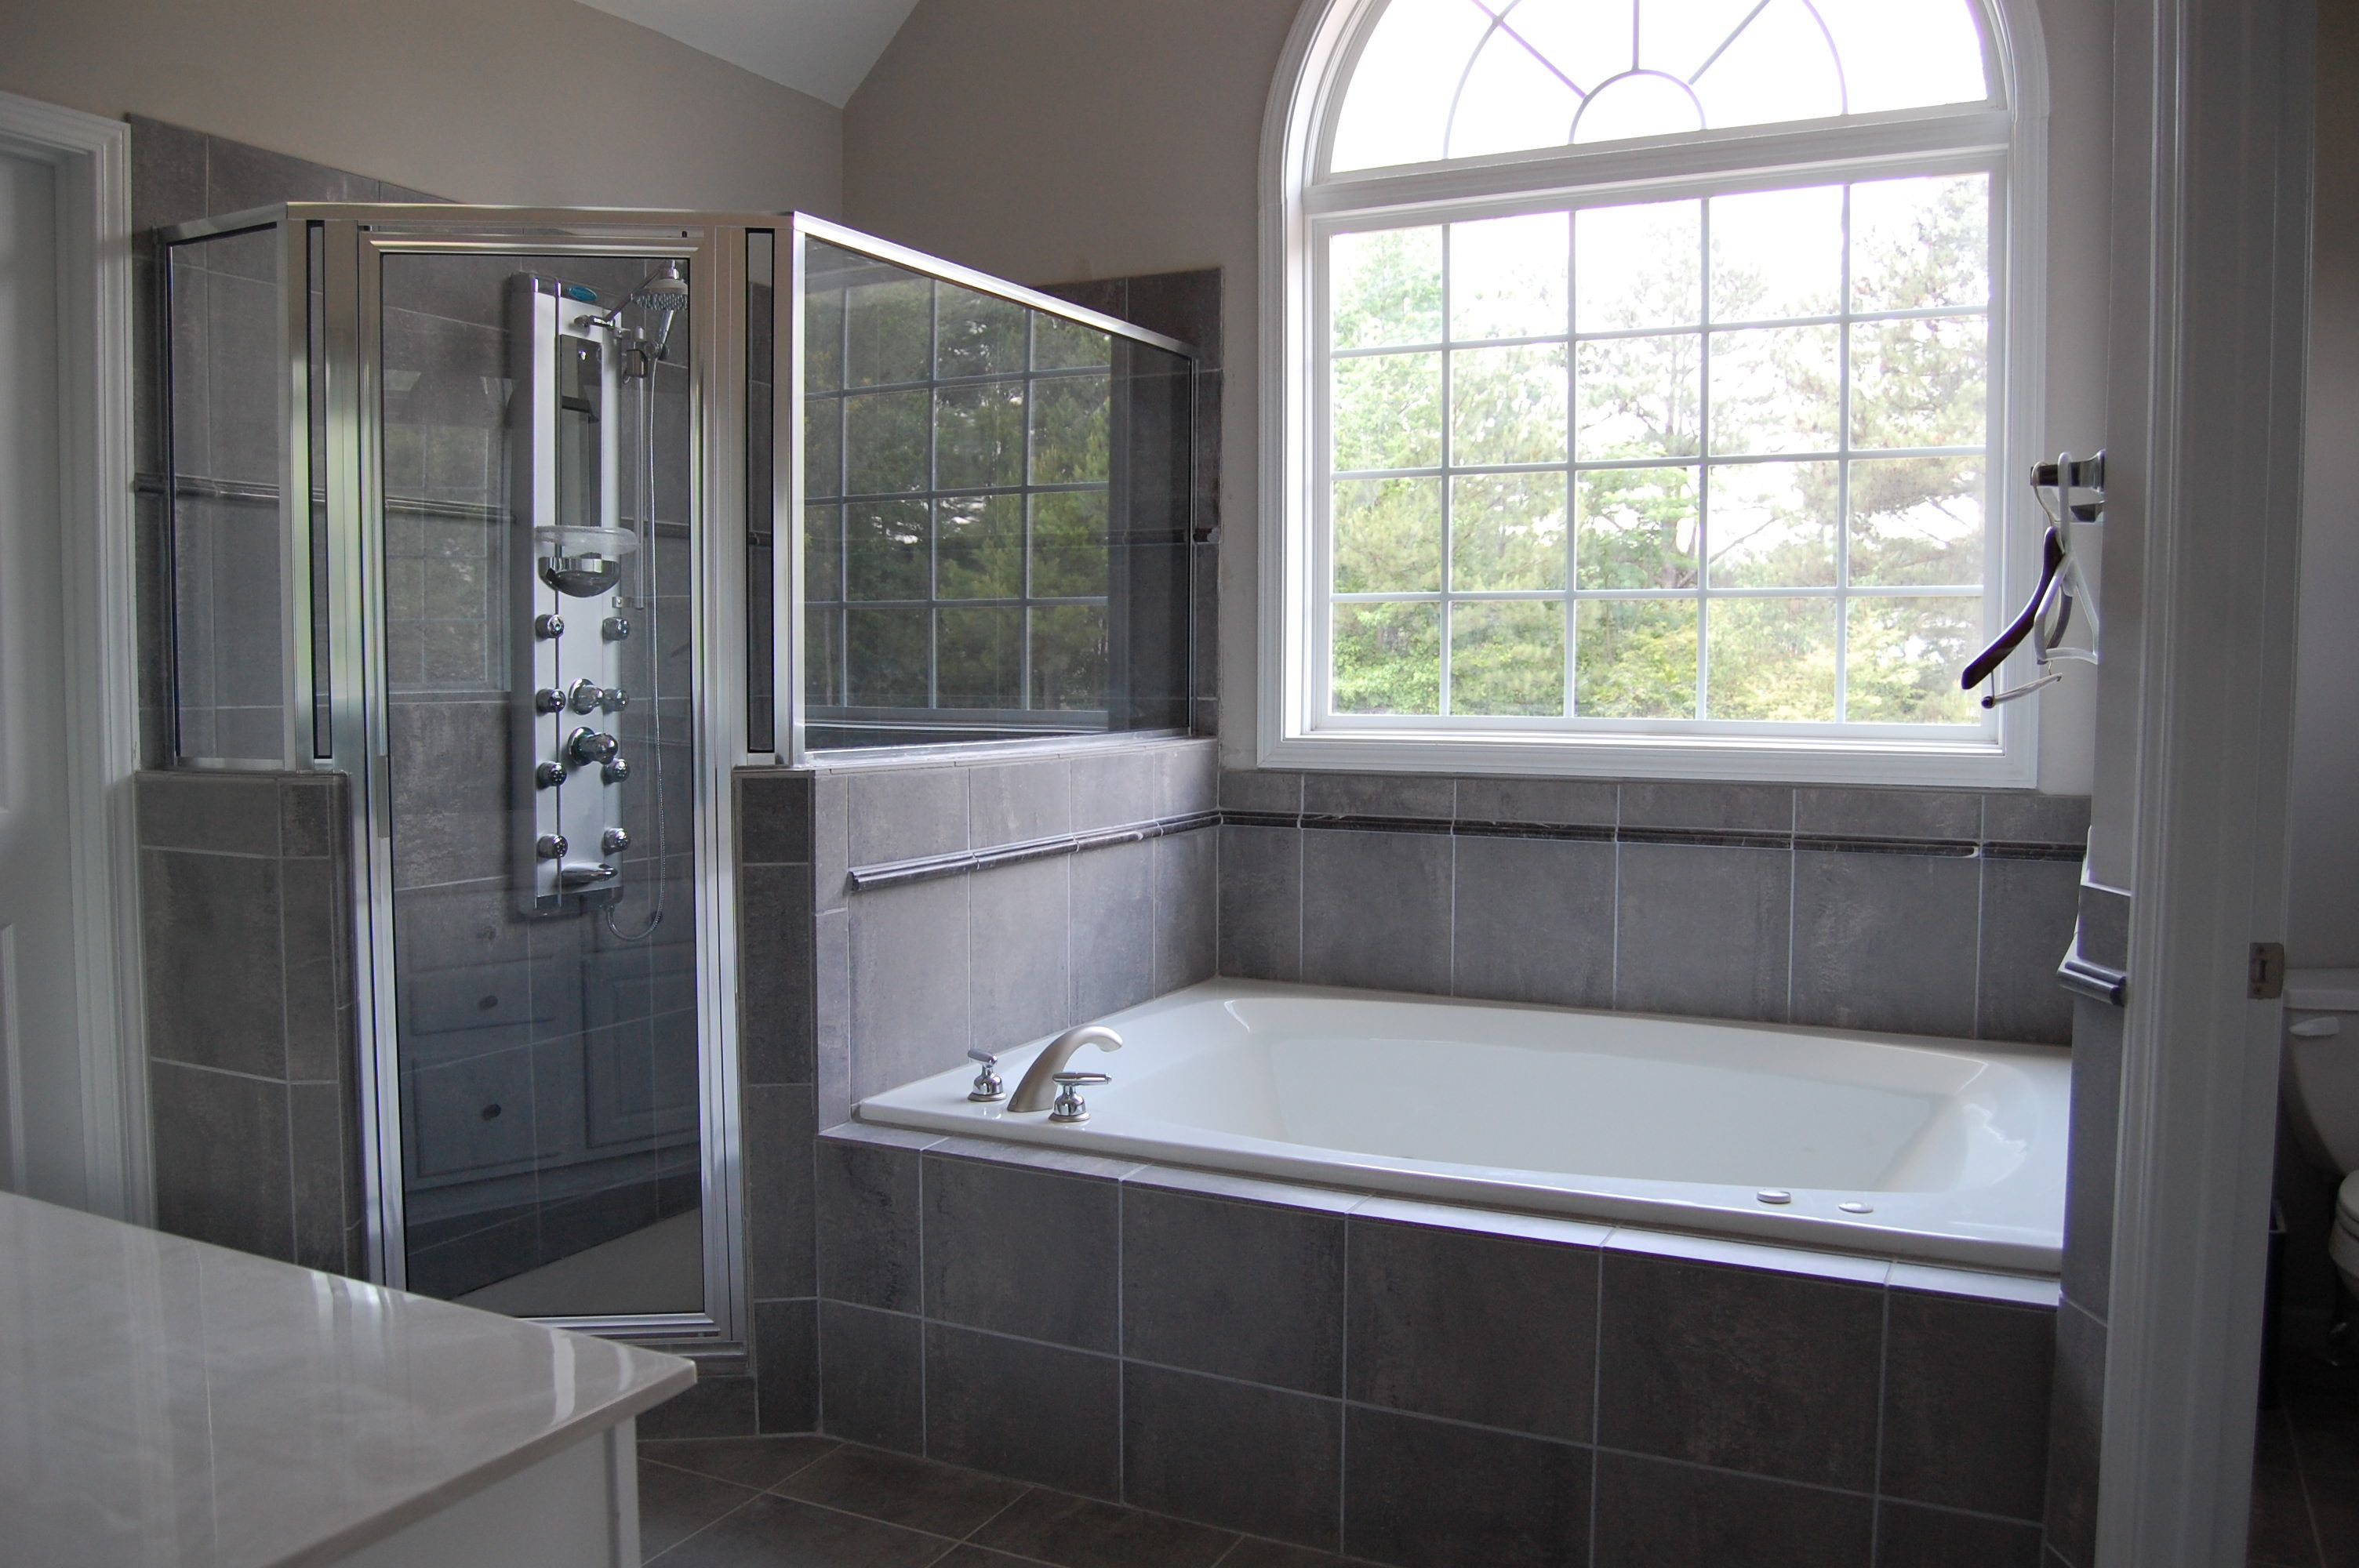 availableget home sizes get bathroom pin options free near amazing remodeling contractors depot